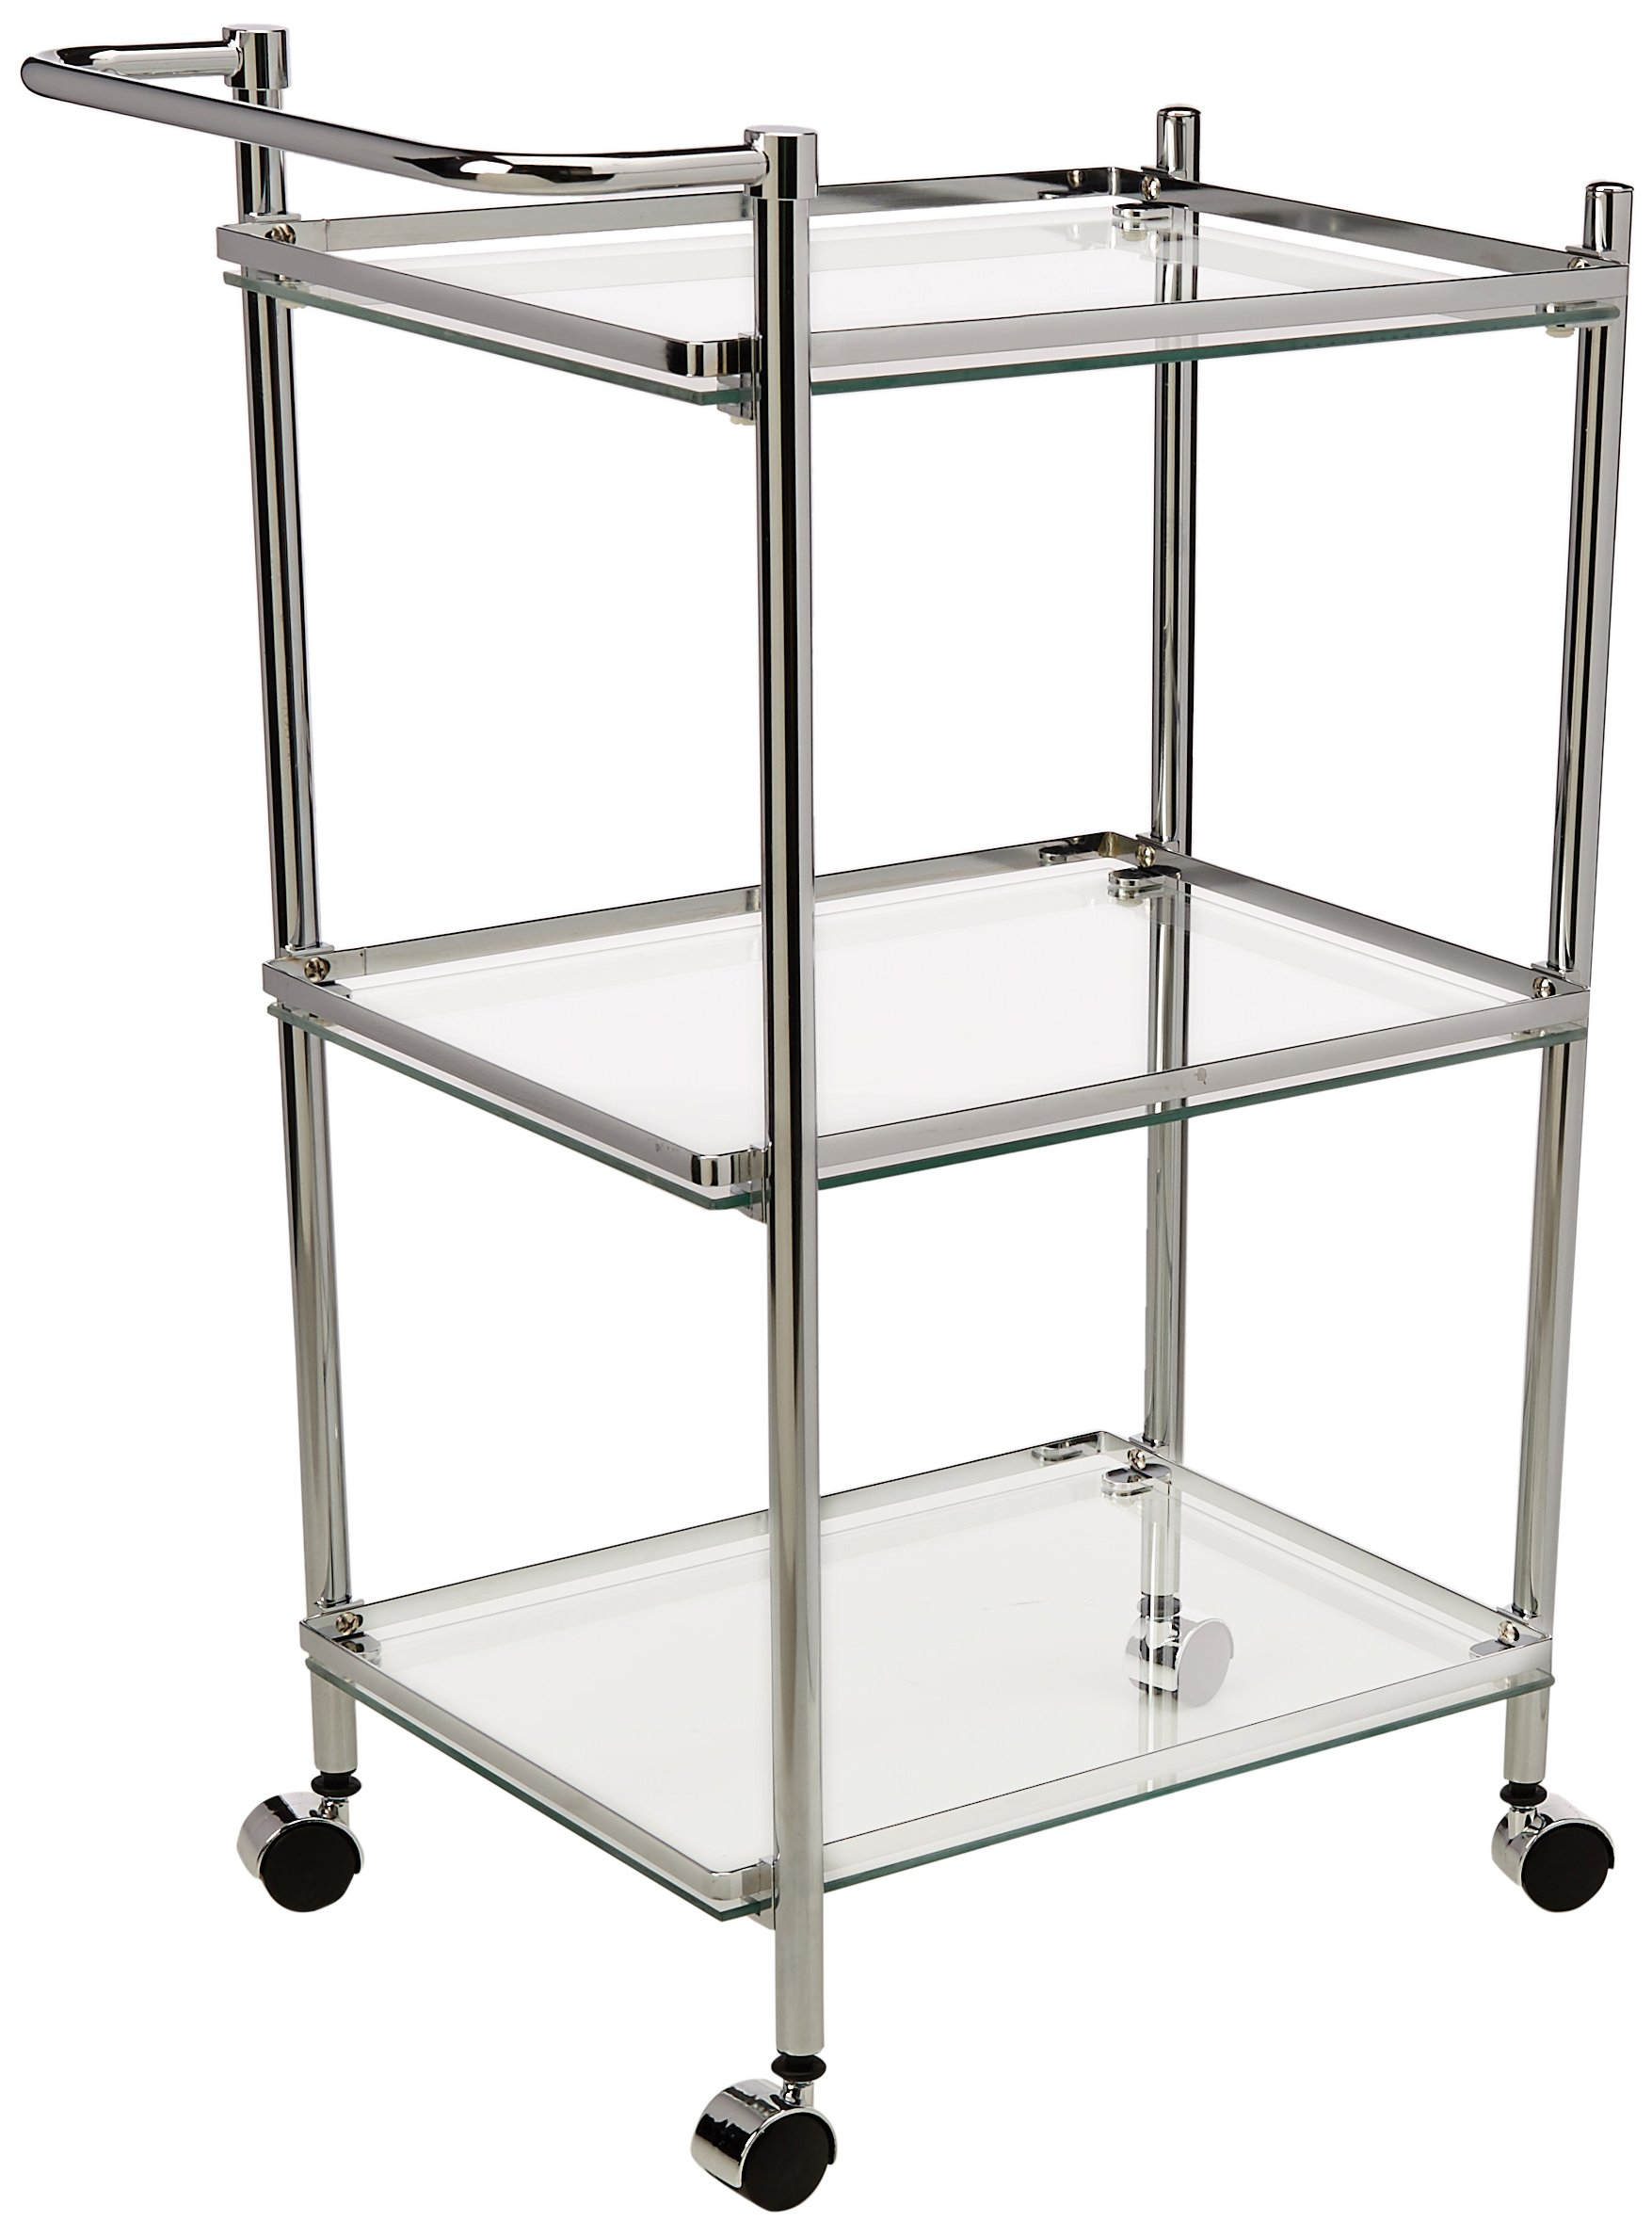 Organize It All 3 Tier Chrome and Tempered Glass Serving Cart by Organize It All